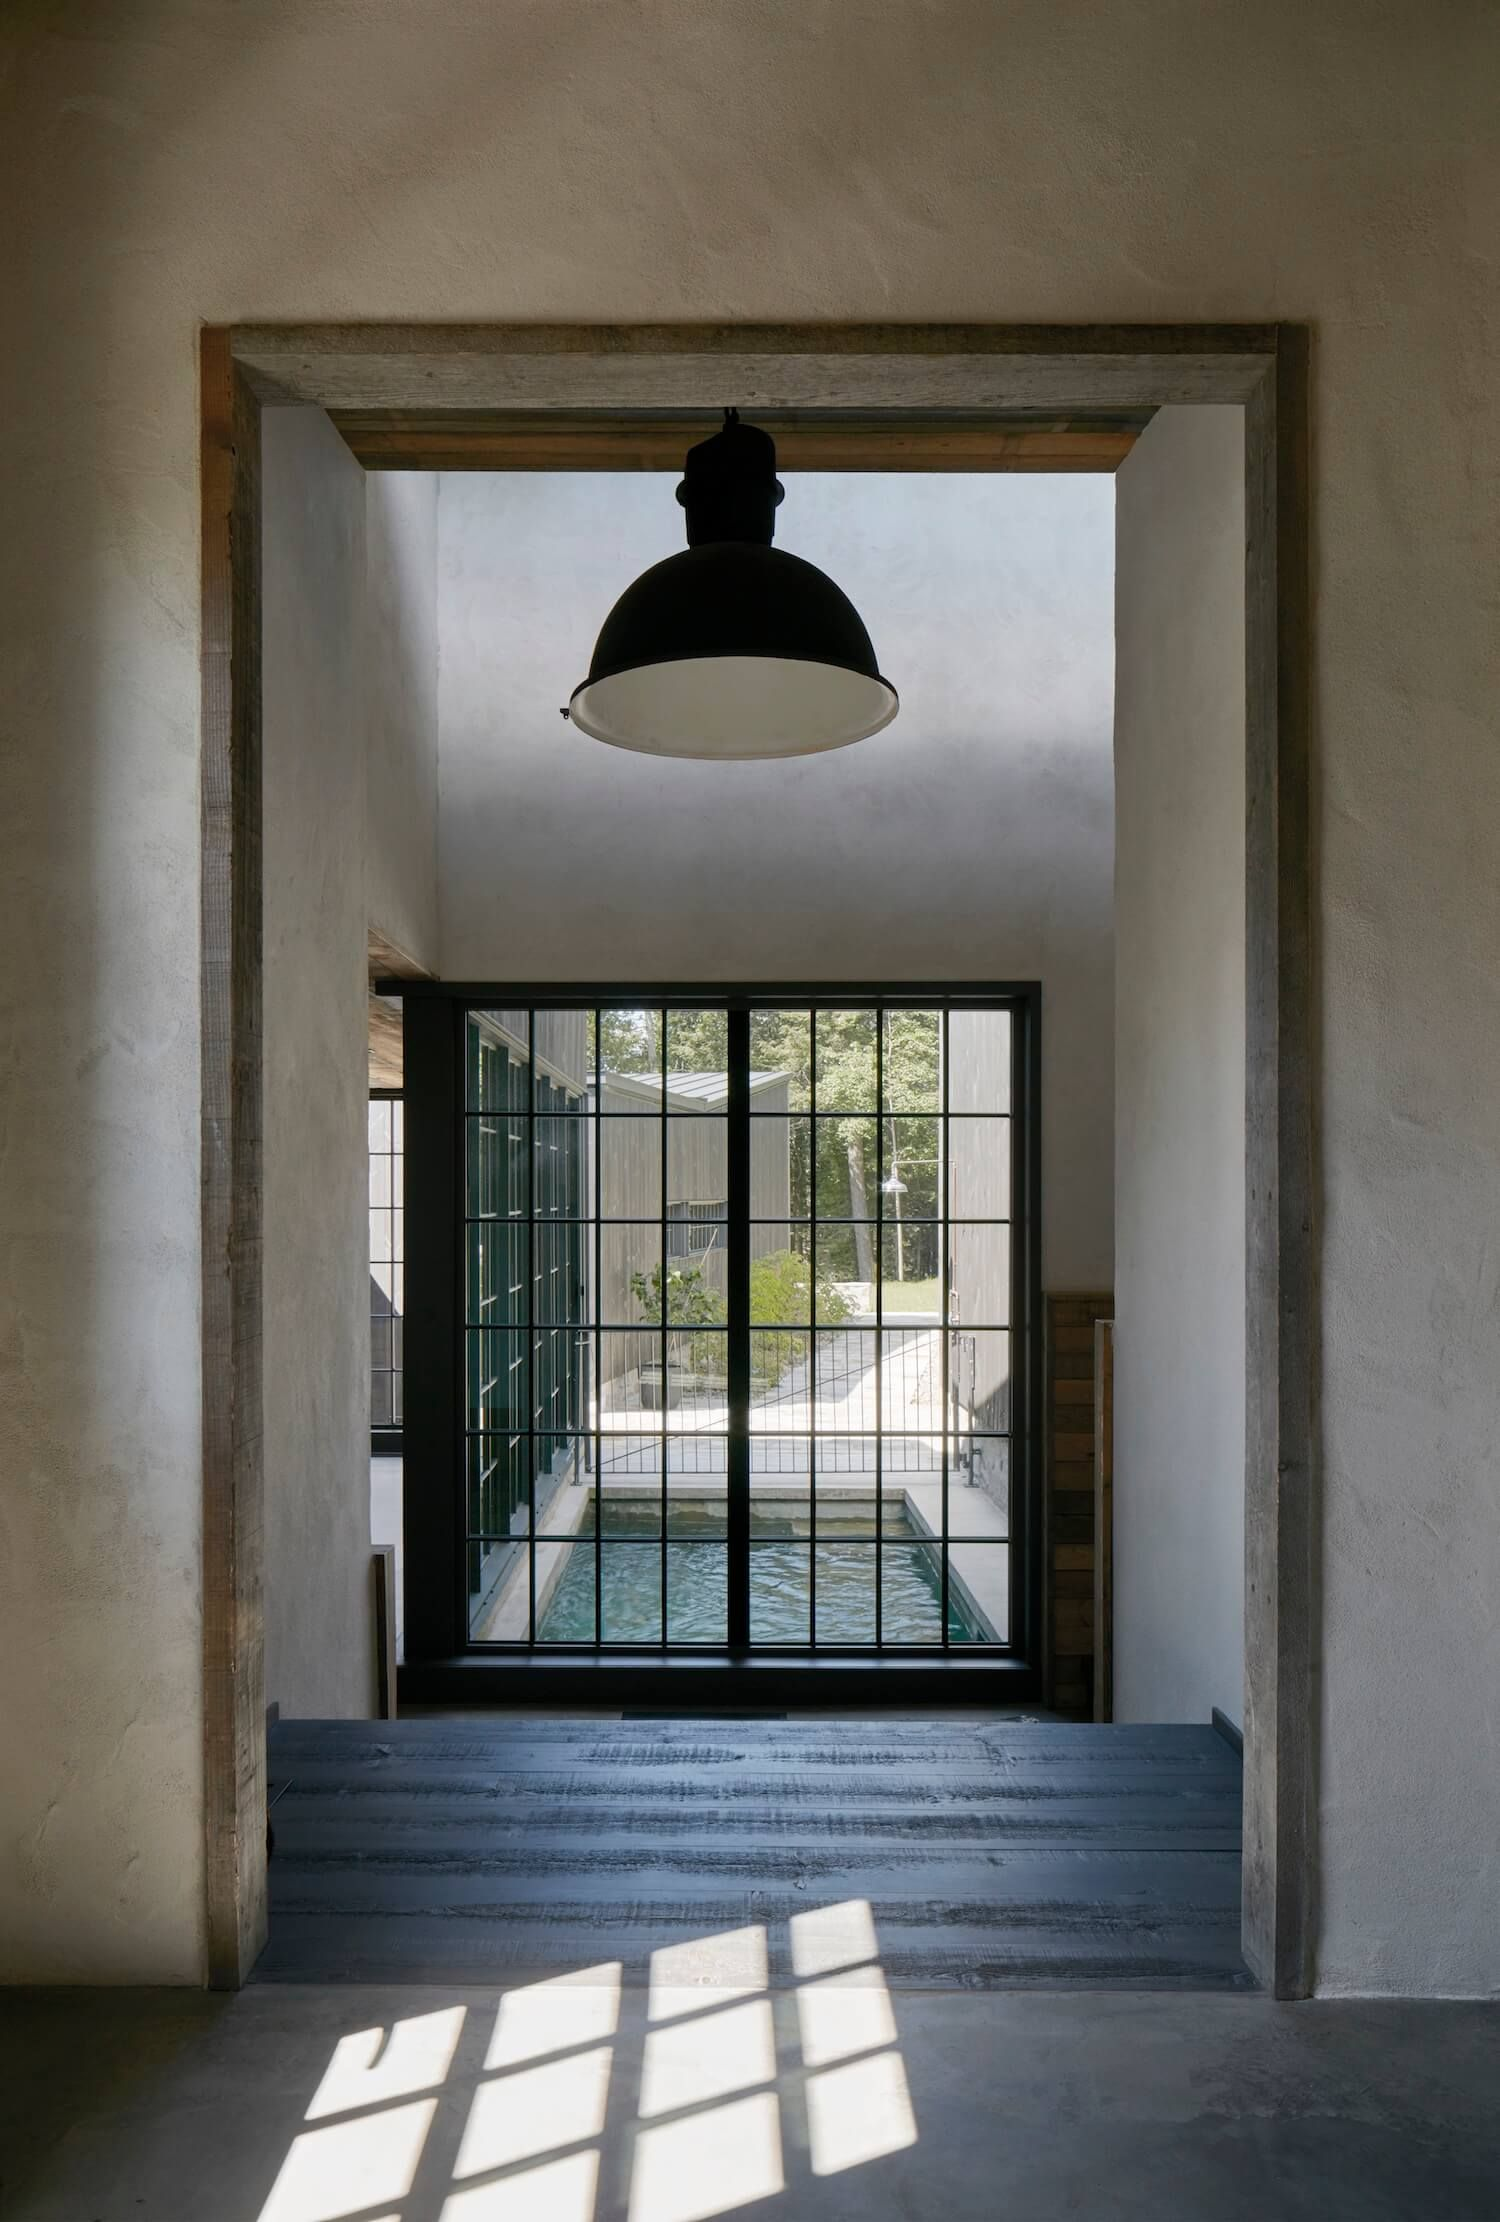 Design carle architecte photography james brittain sweet home make sweethomemake interior decoration ideas decor also ts for women inspired birthday and christmas in rh pinterest